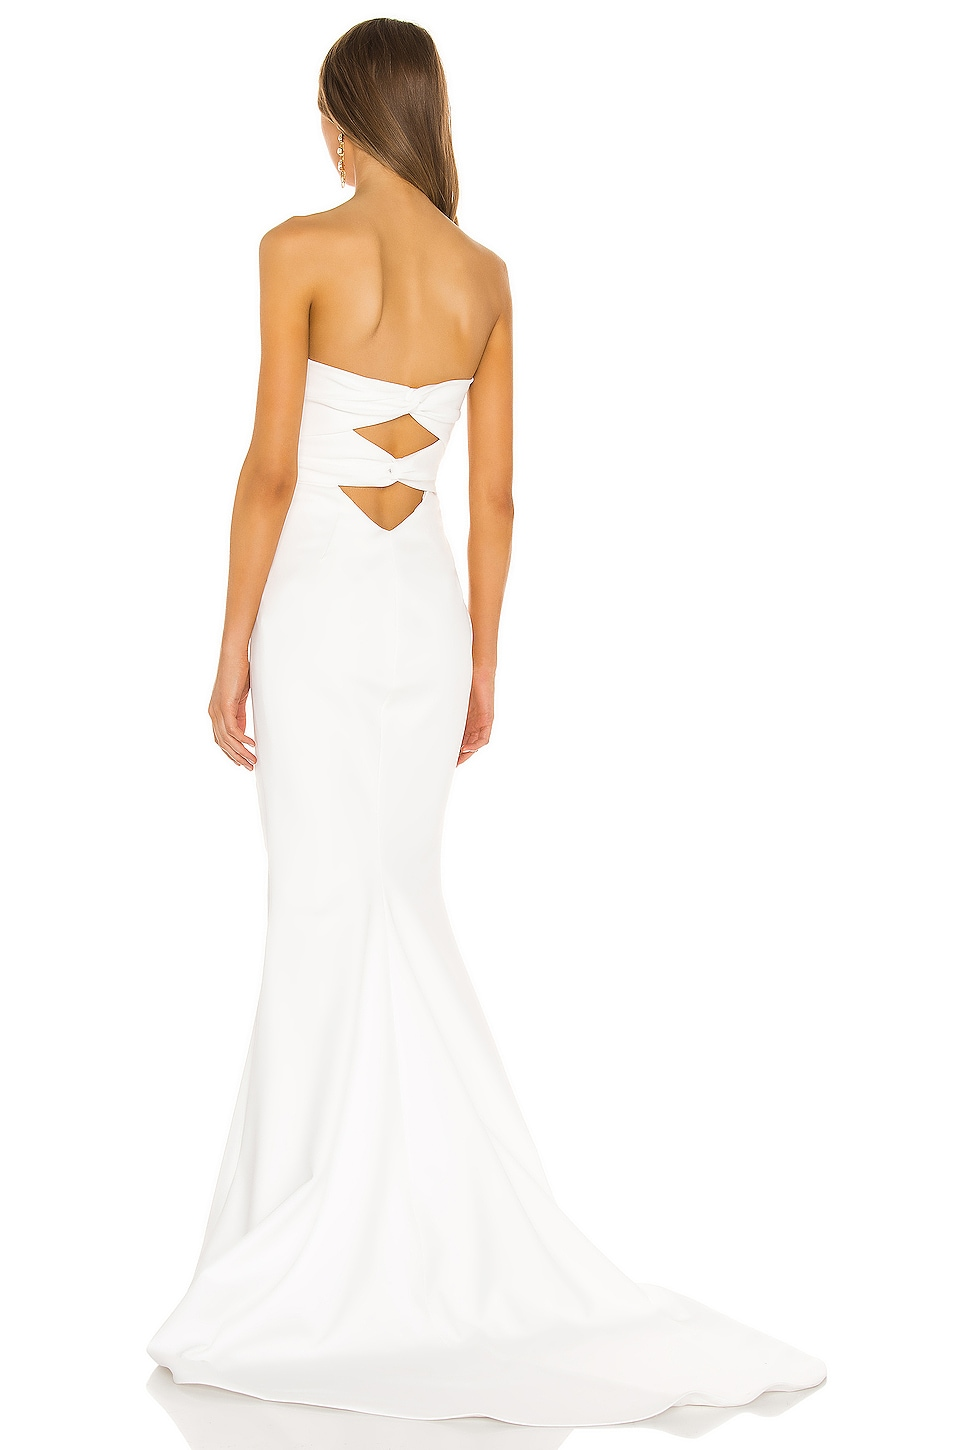 X NOEL AND JEAN Divinity Gown, view 3, click to view large image.